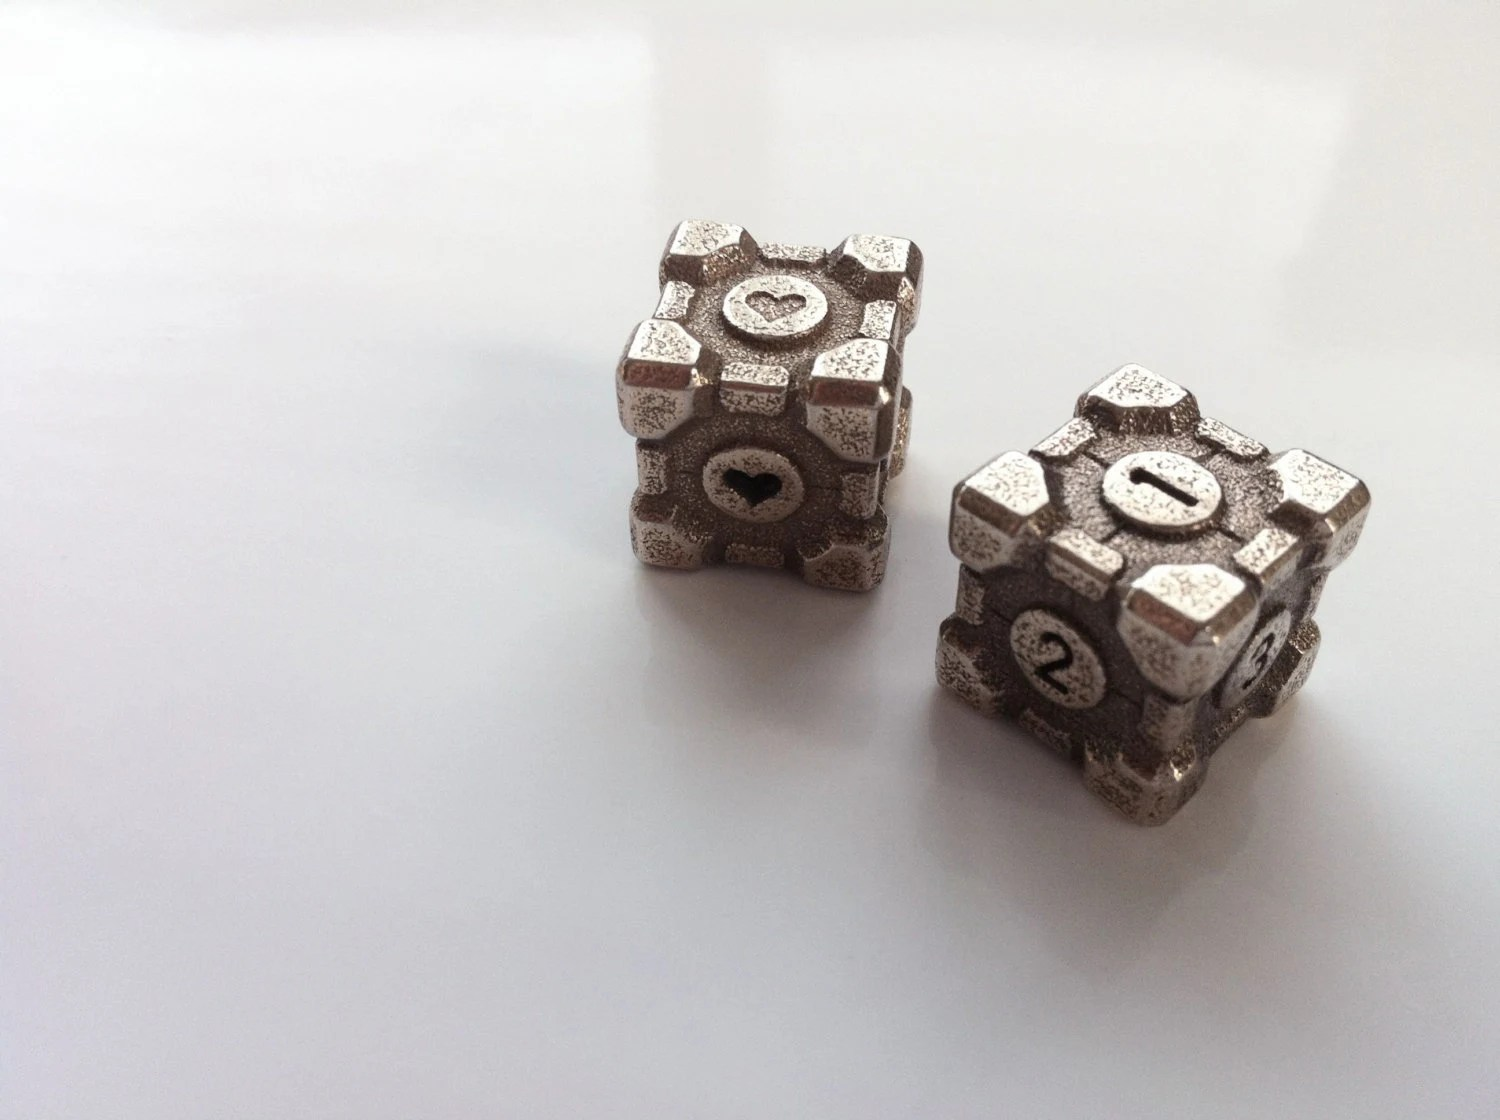 Weighted Companion Cube Die - Stainless Steel - (Portal Dice)